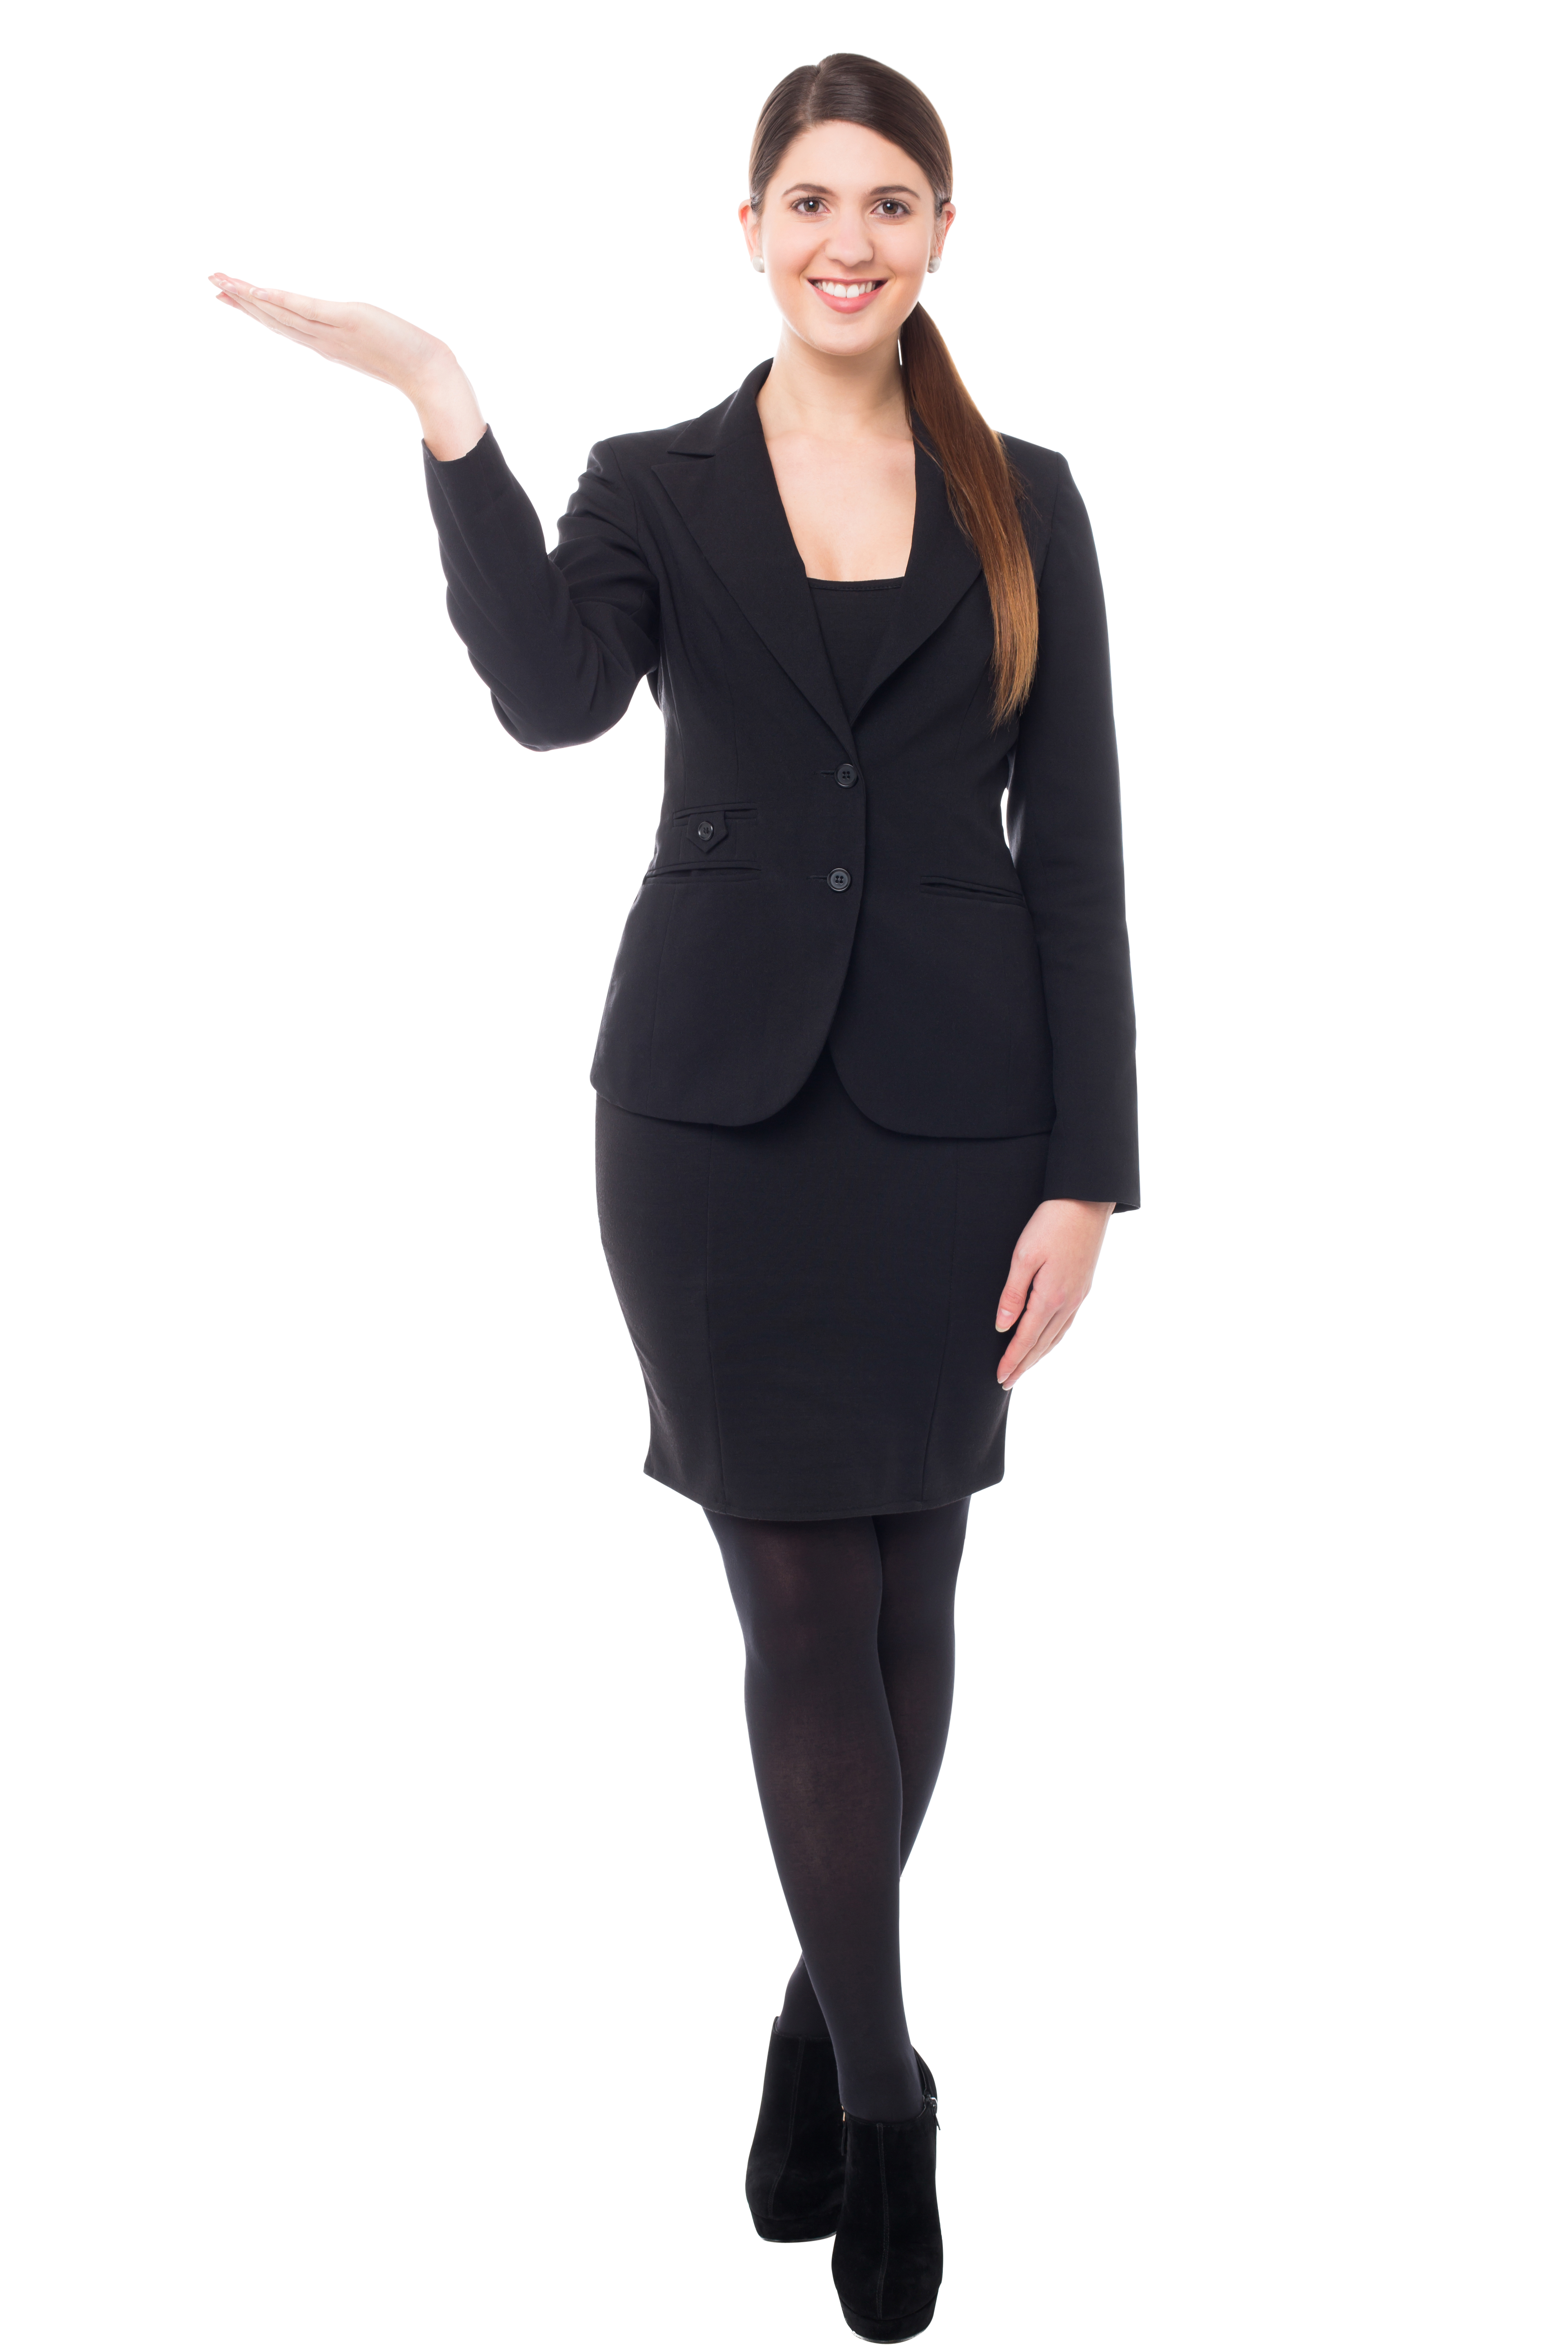 Girl Pointing Left Free Commercial Use PNG Images.